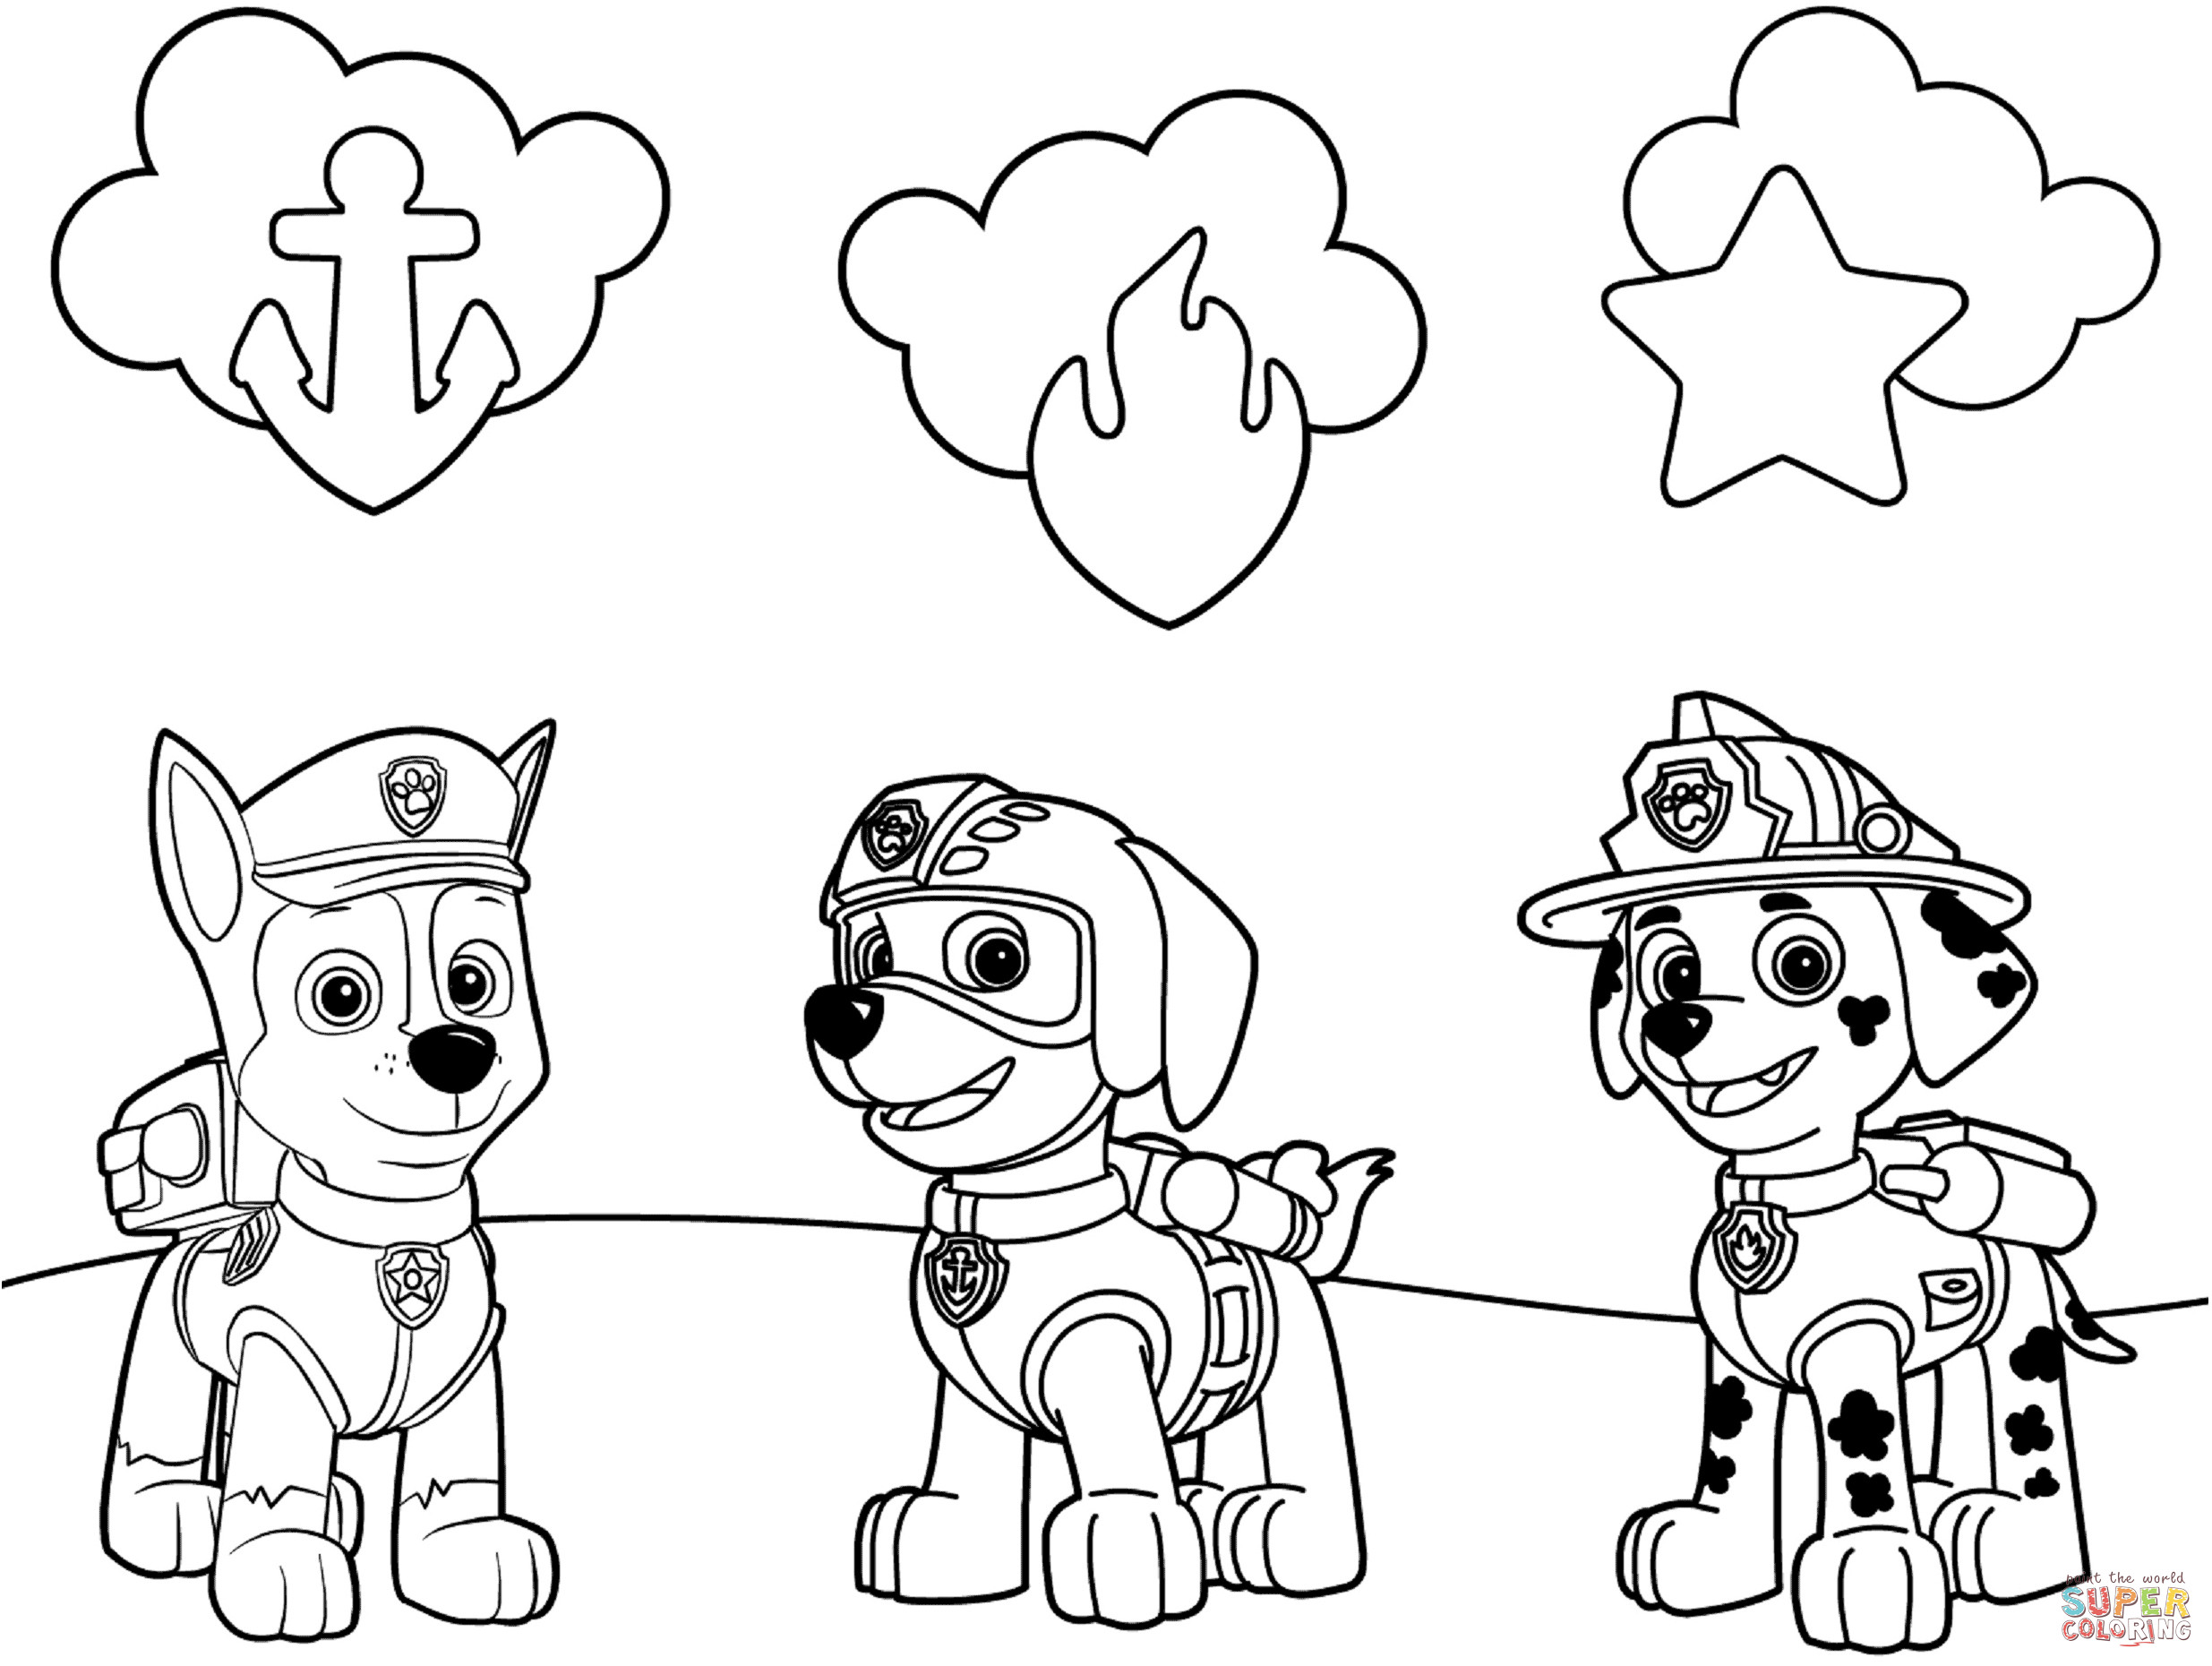 Best ideas about Paw Patrol Free Coloring Sheets . Save or Pin Paw Patrol Badges coloring page Now.